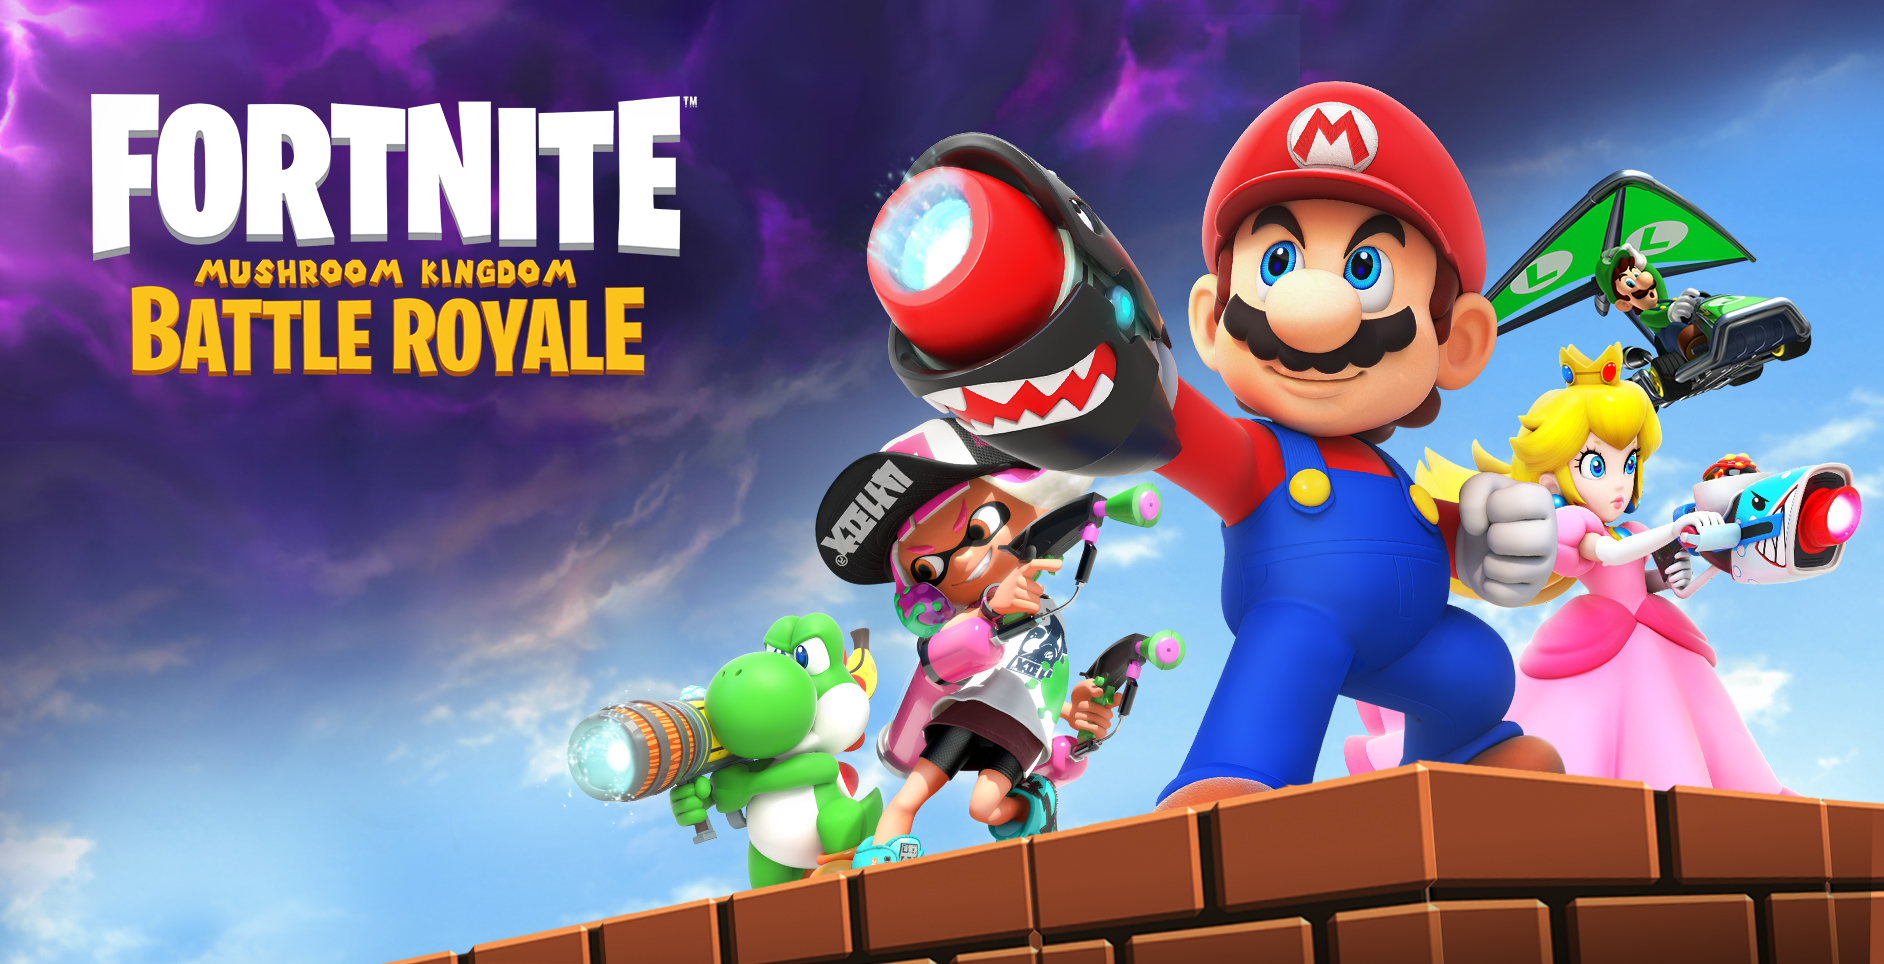 Fortnite Mushroom Kingdom Battle Royale Is Coming To Nintendo Switch